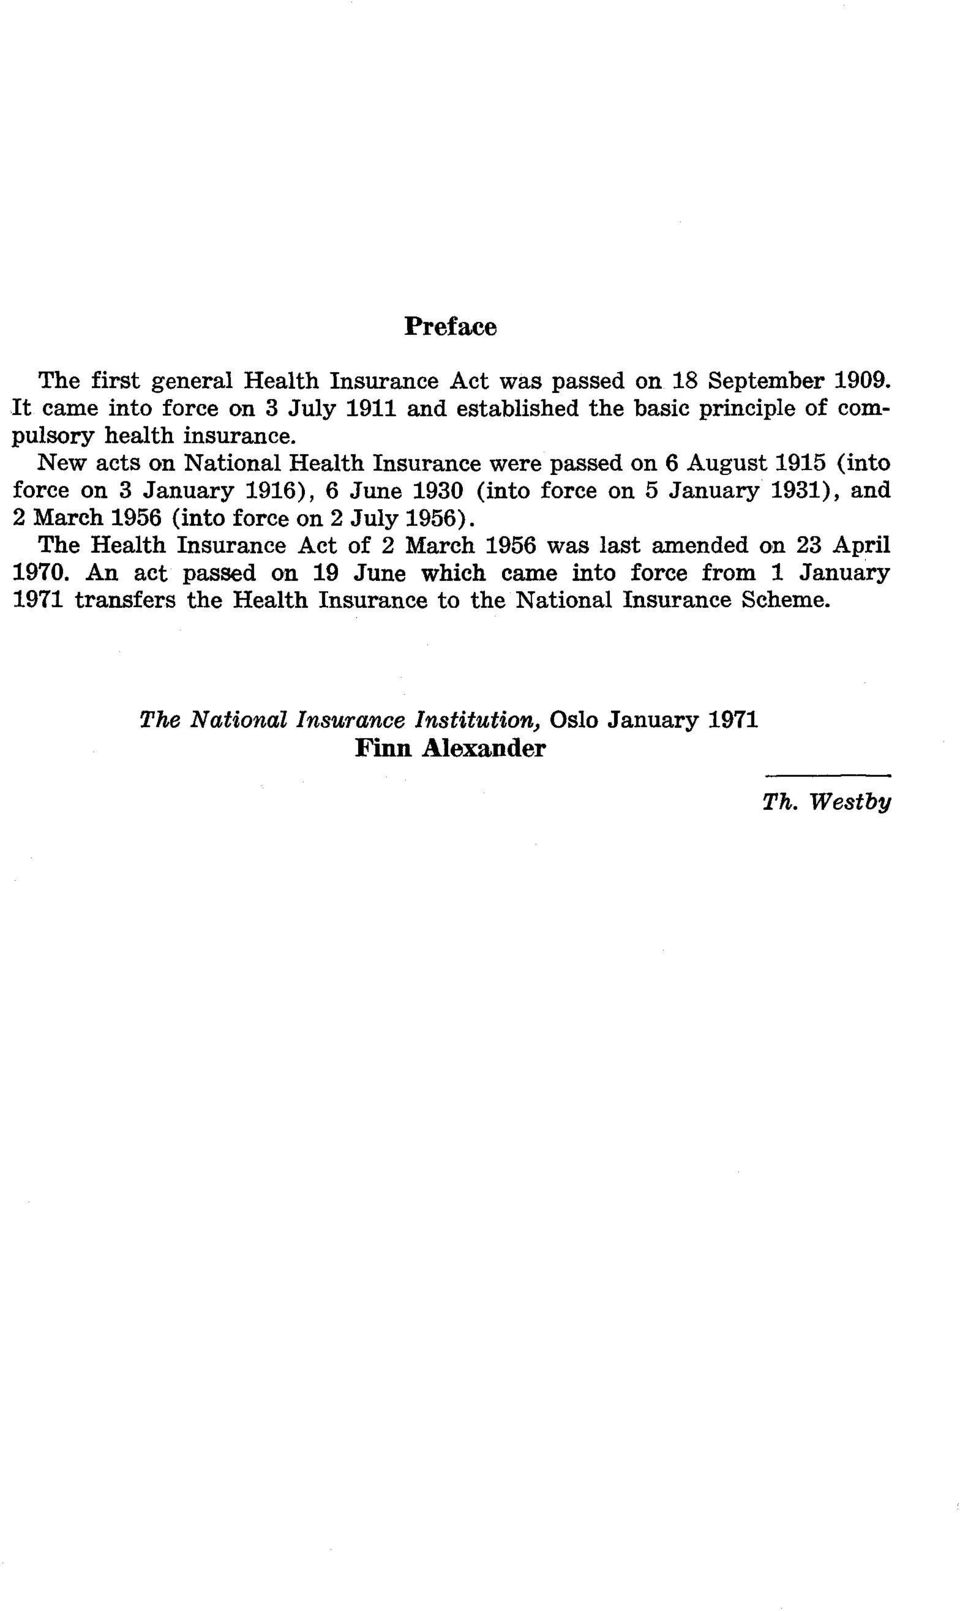 New acts on National Health Insurance were passed on 6 August 1915 (into force on 3 January 1916), 6 June 1930 (into force on 5 January 1931), and 2 March 1956